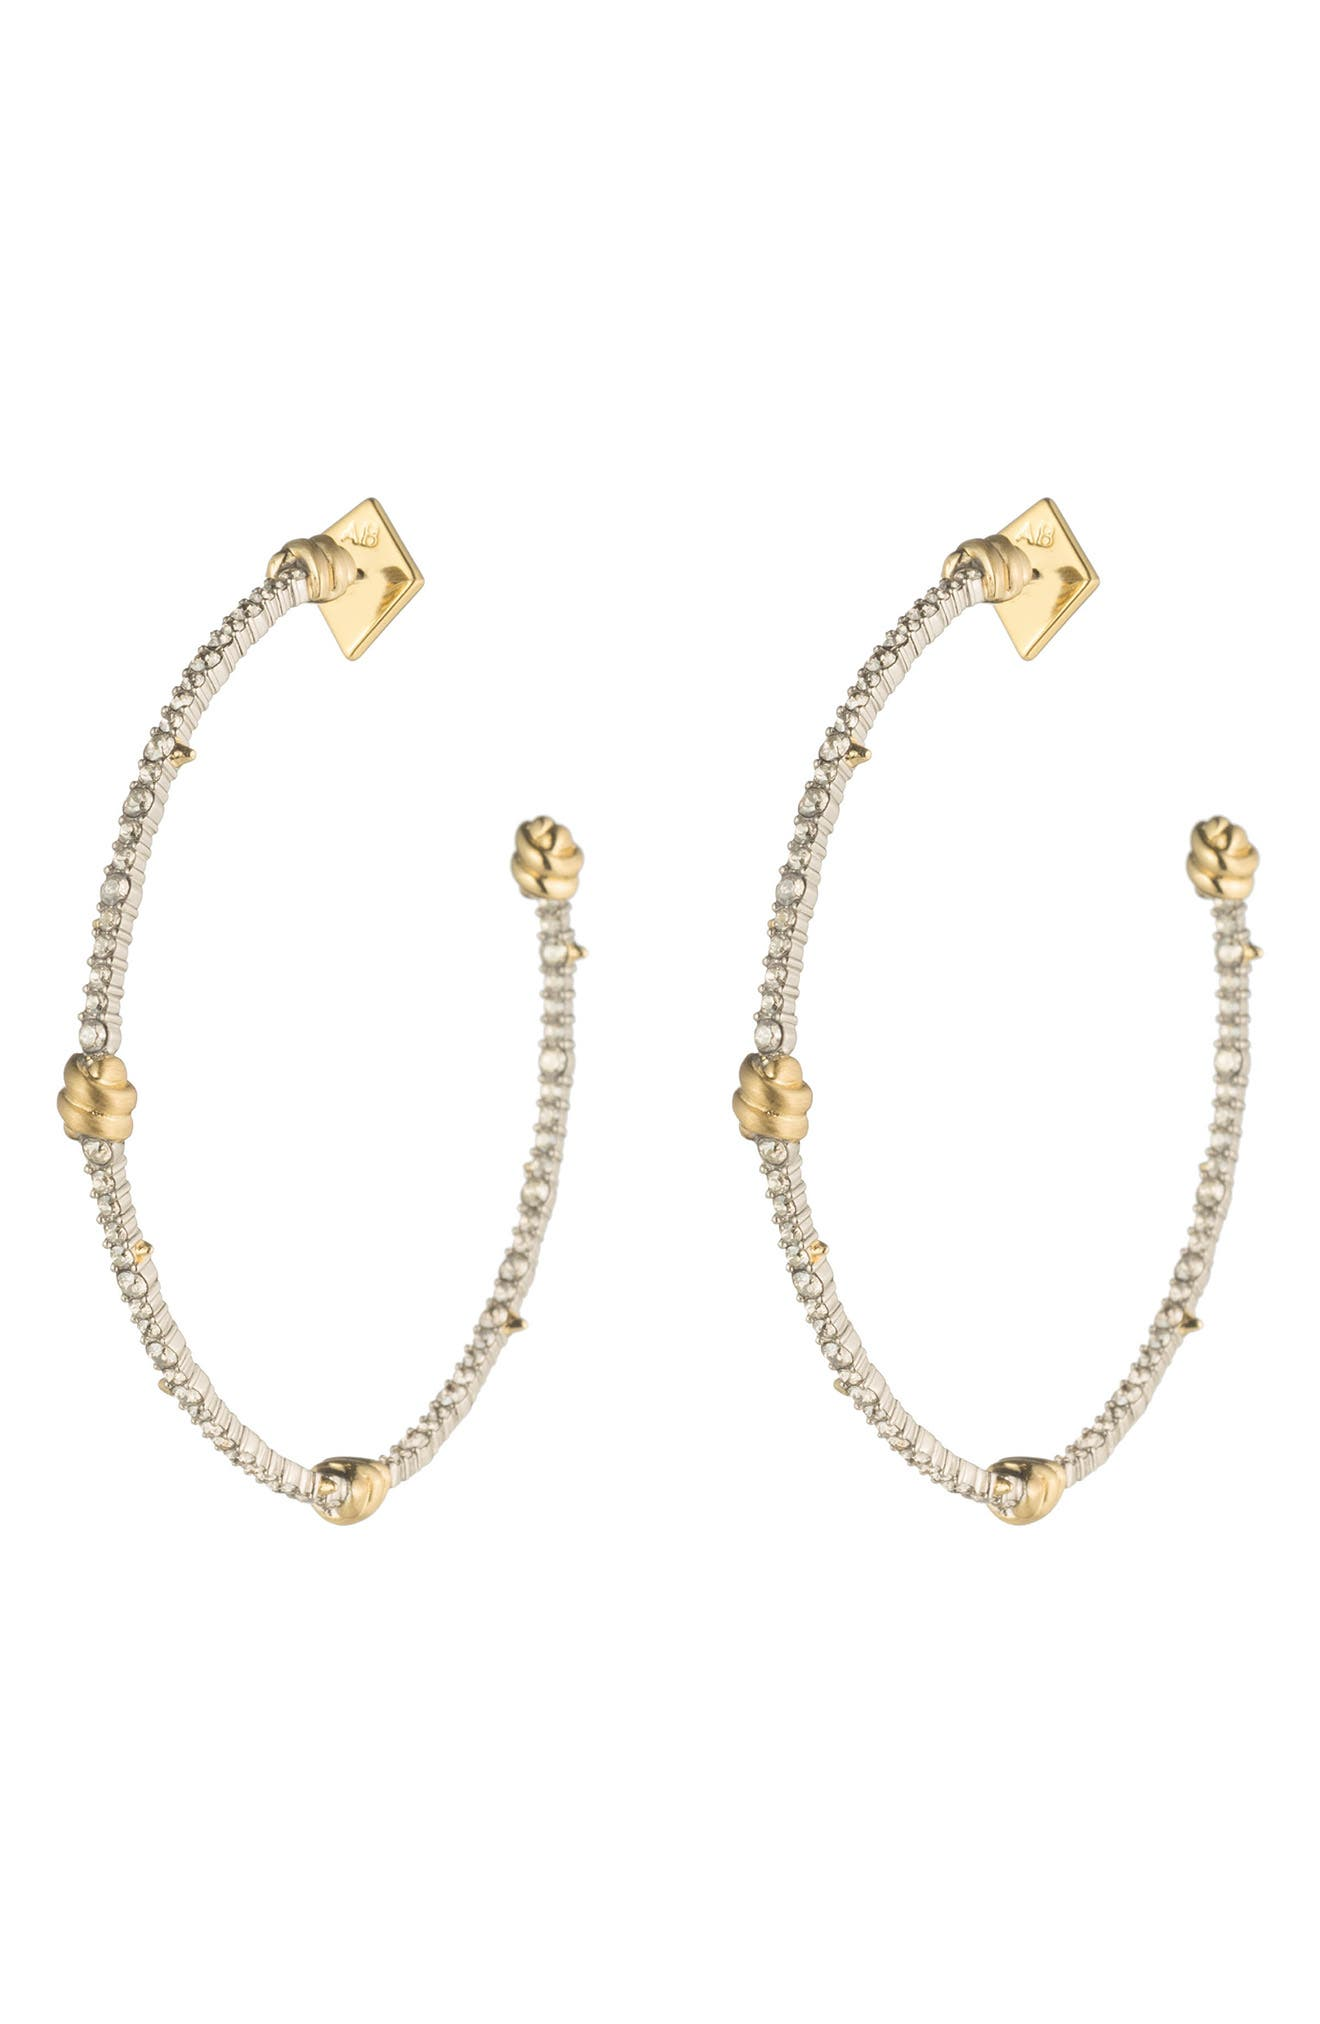 Crystal Pavé Knotted Hoop Earrings,                             Main thumbnail 1, color,                             GOLD/ SILVER